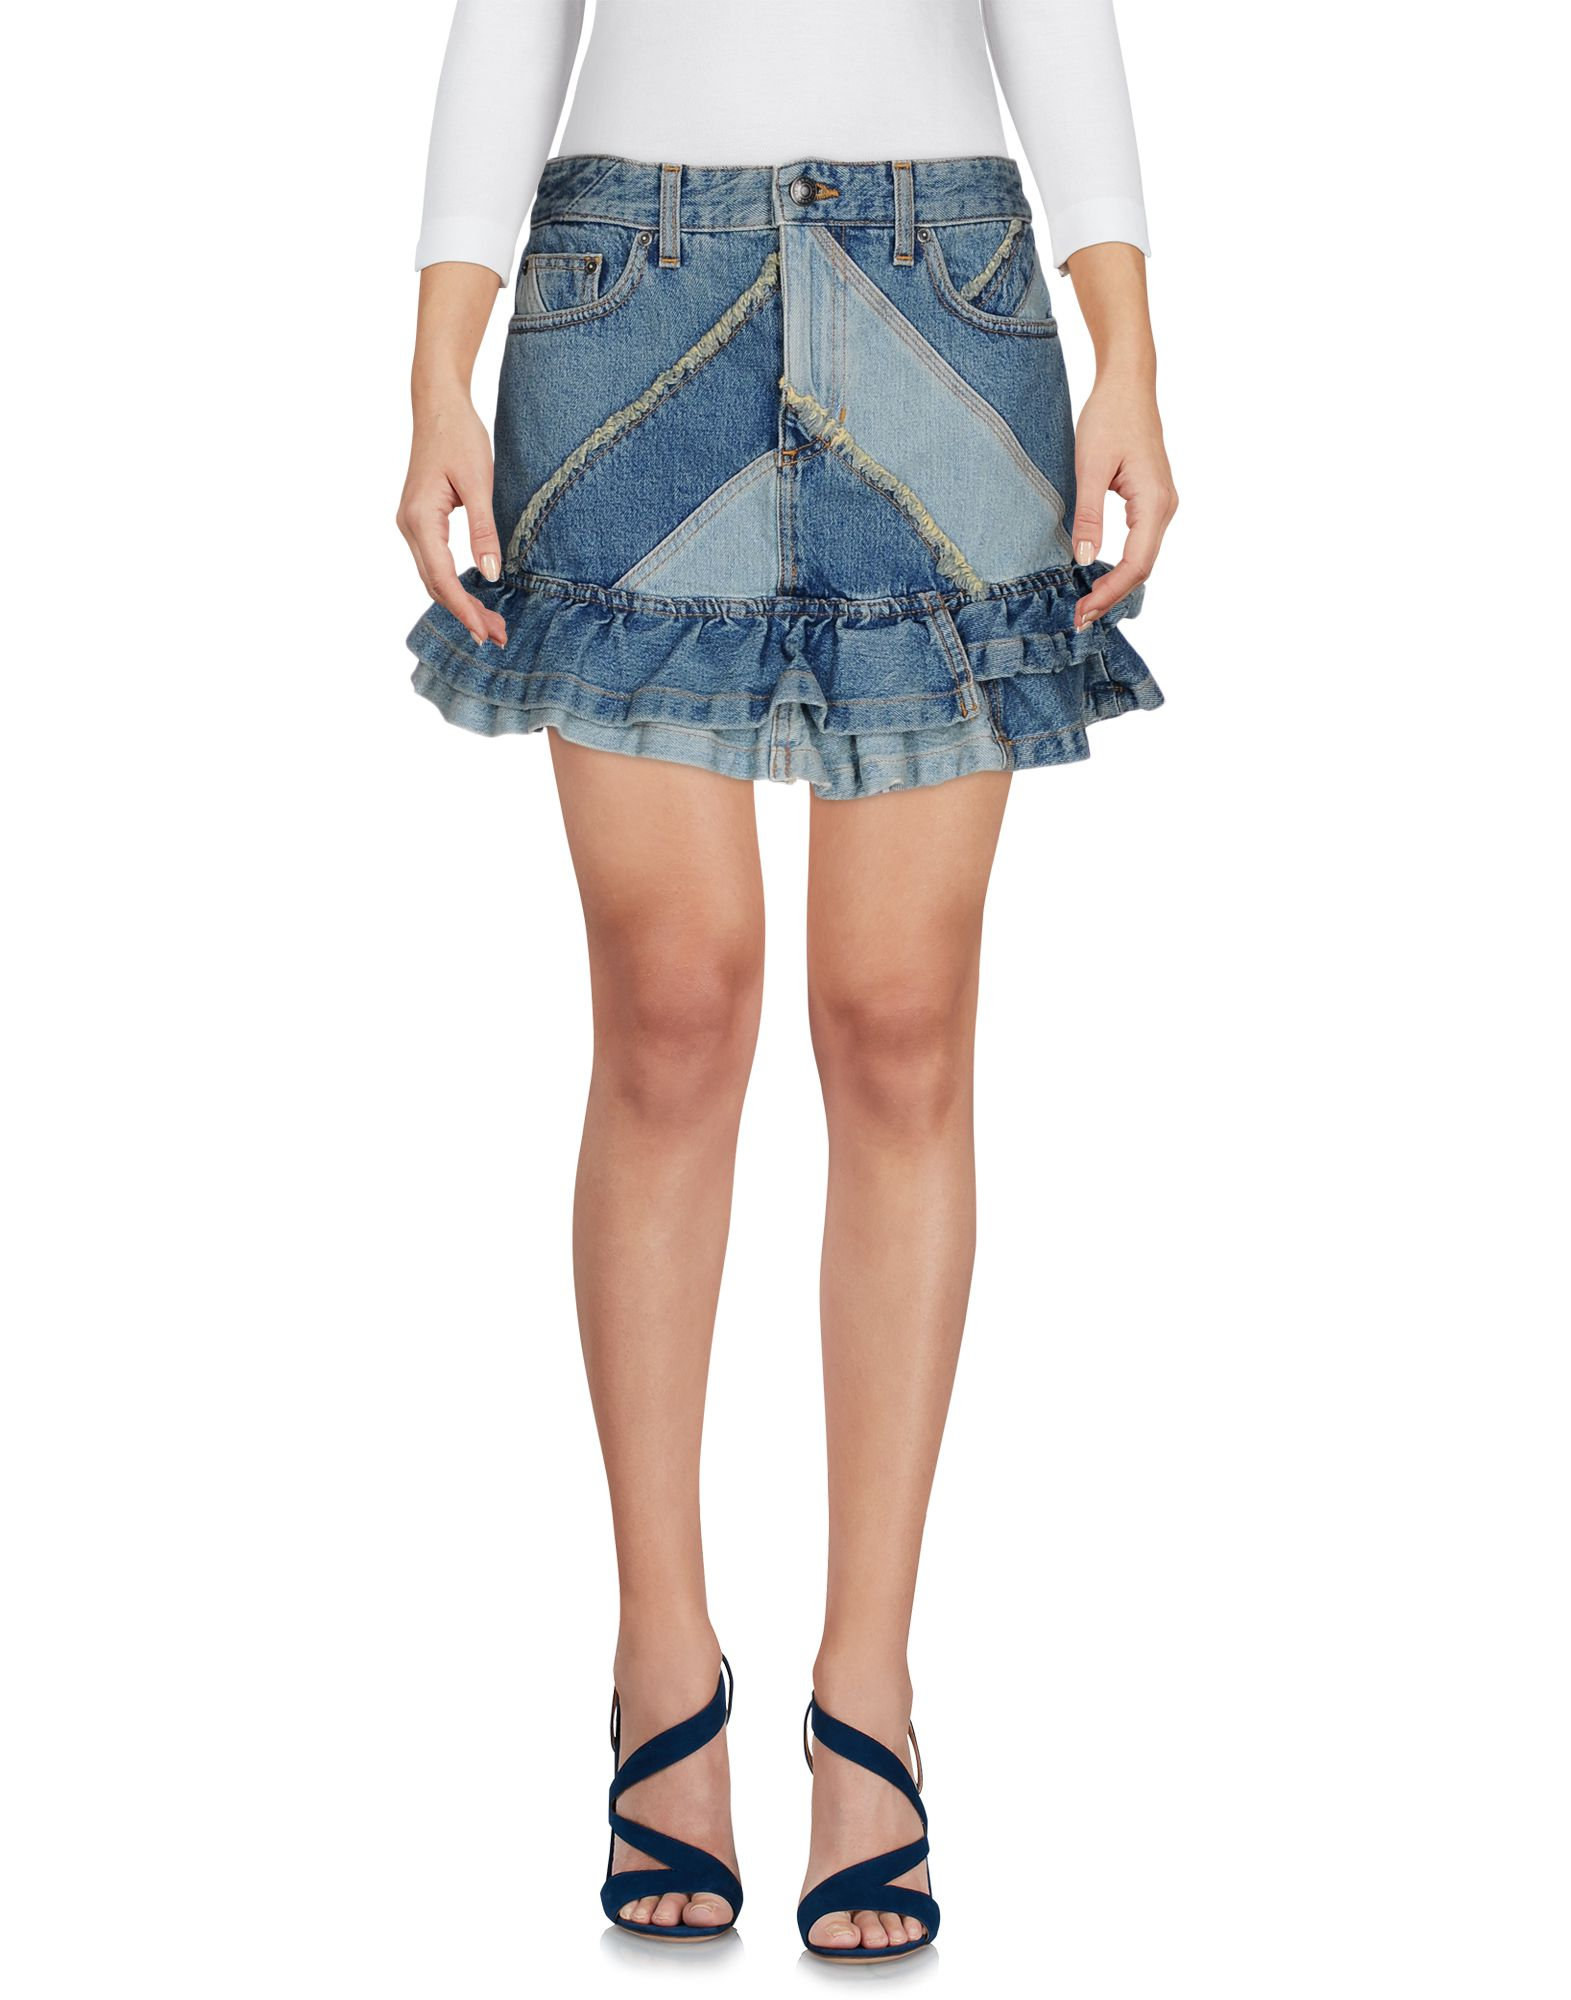 Gonna Jeans Marc By Marc Jacobs Donna - Acquista online su 76d5HoEUv